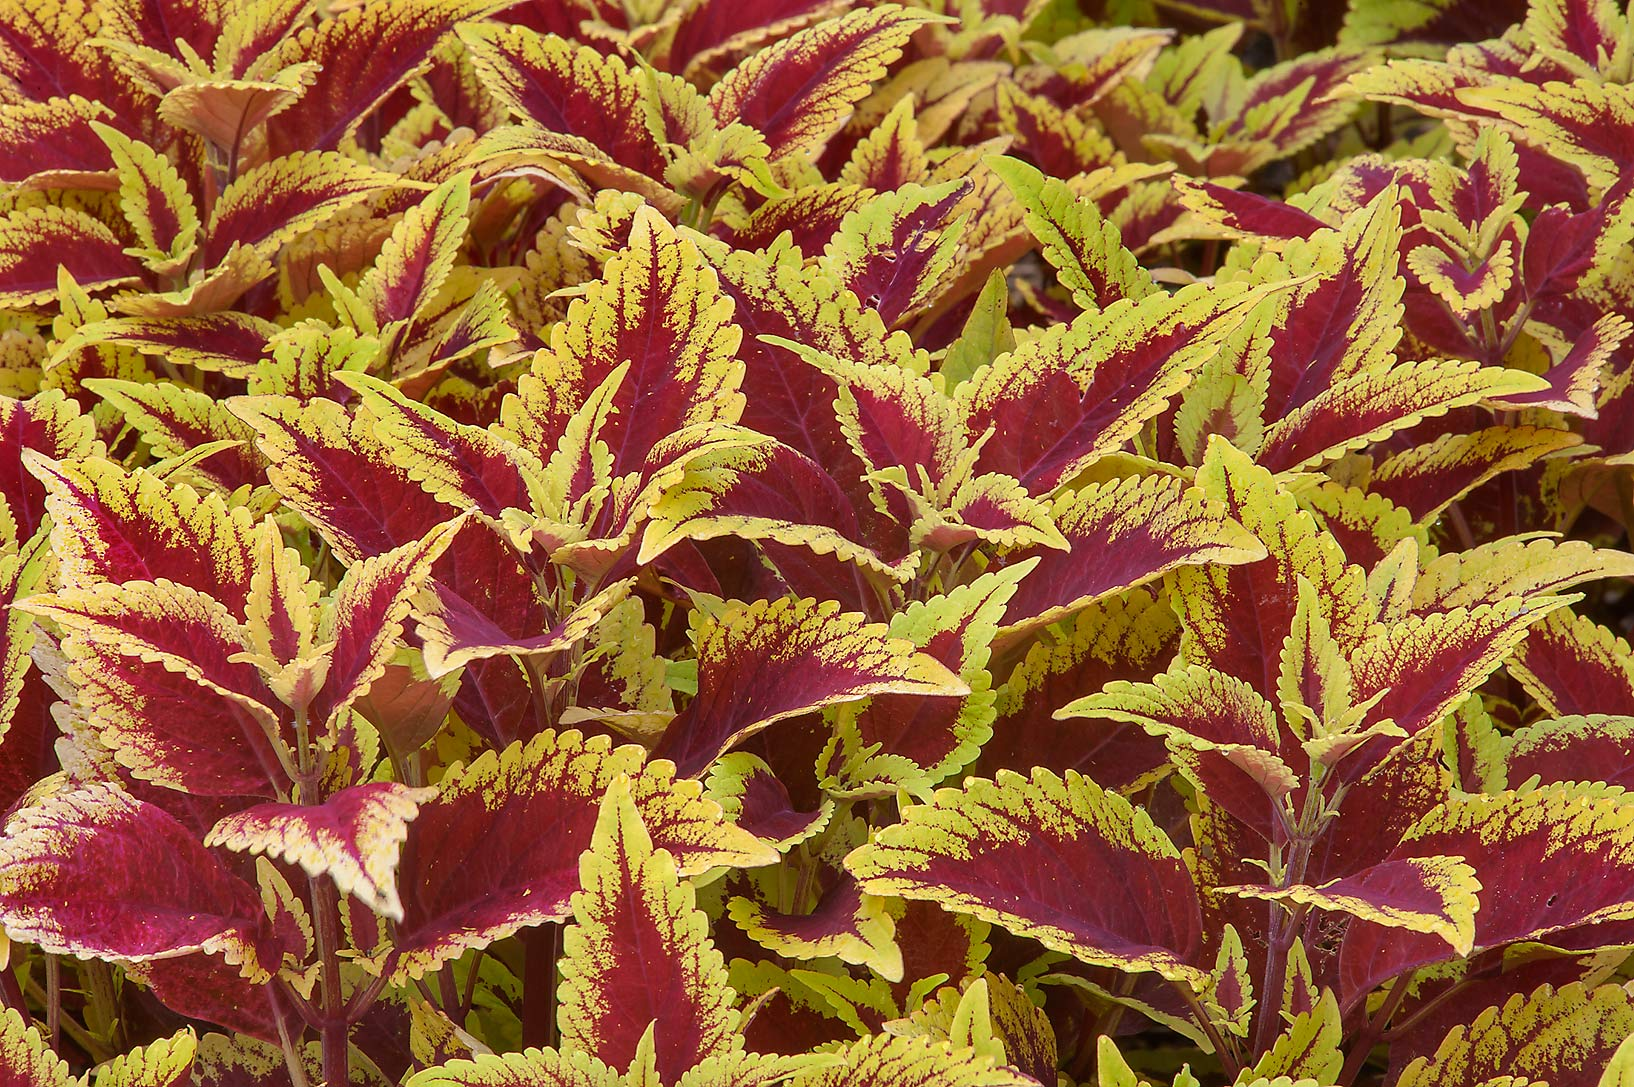 Coleus in Mercer Arboretum and Botanical Gardens. Humble (Houston area), Texas